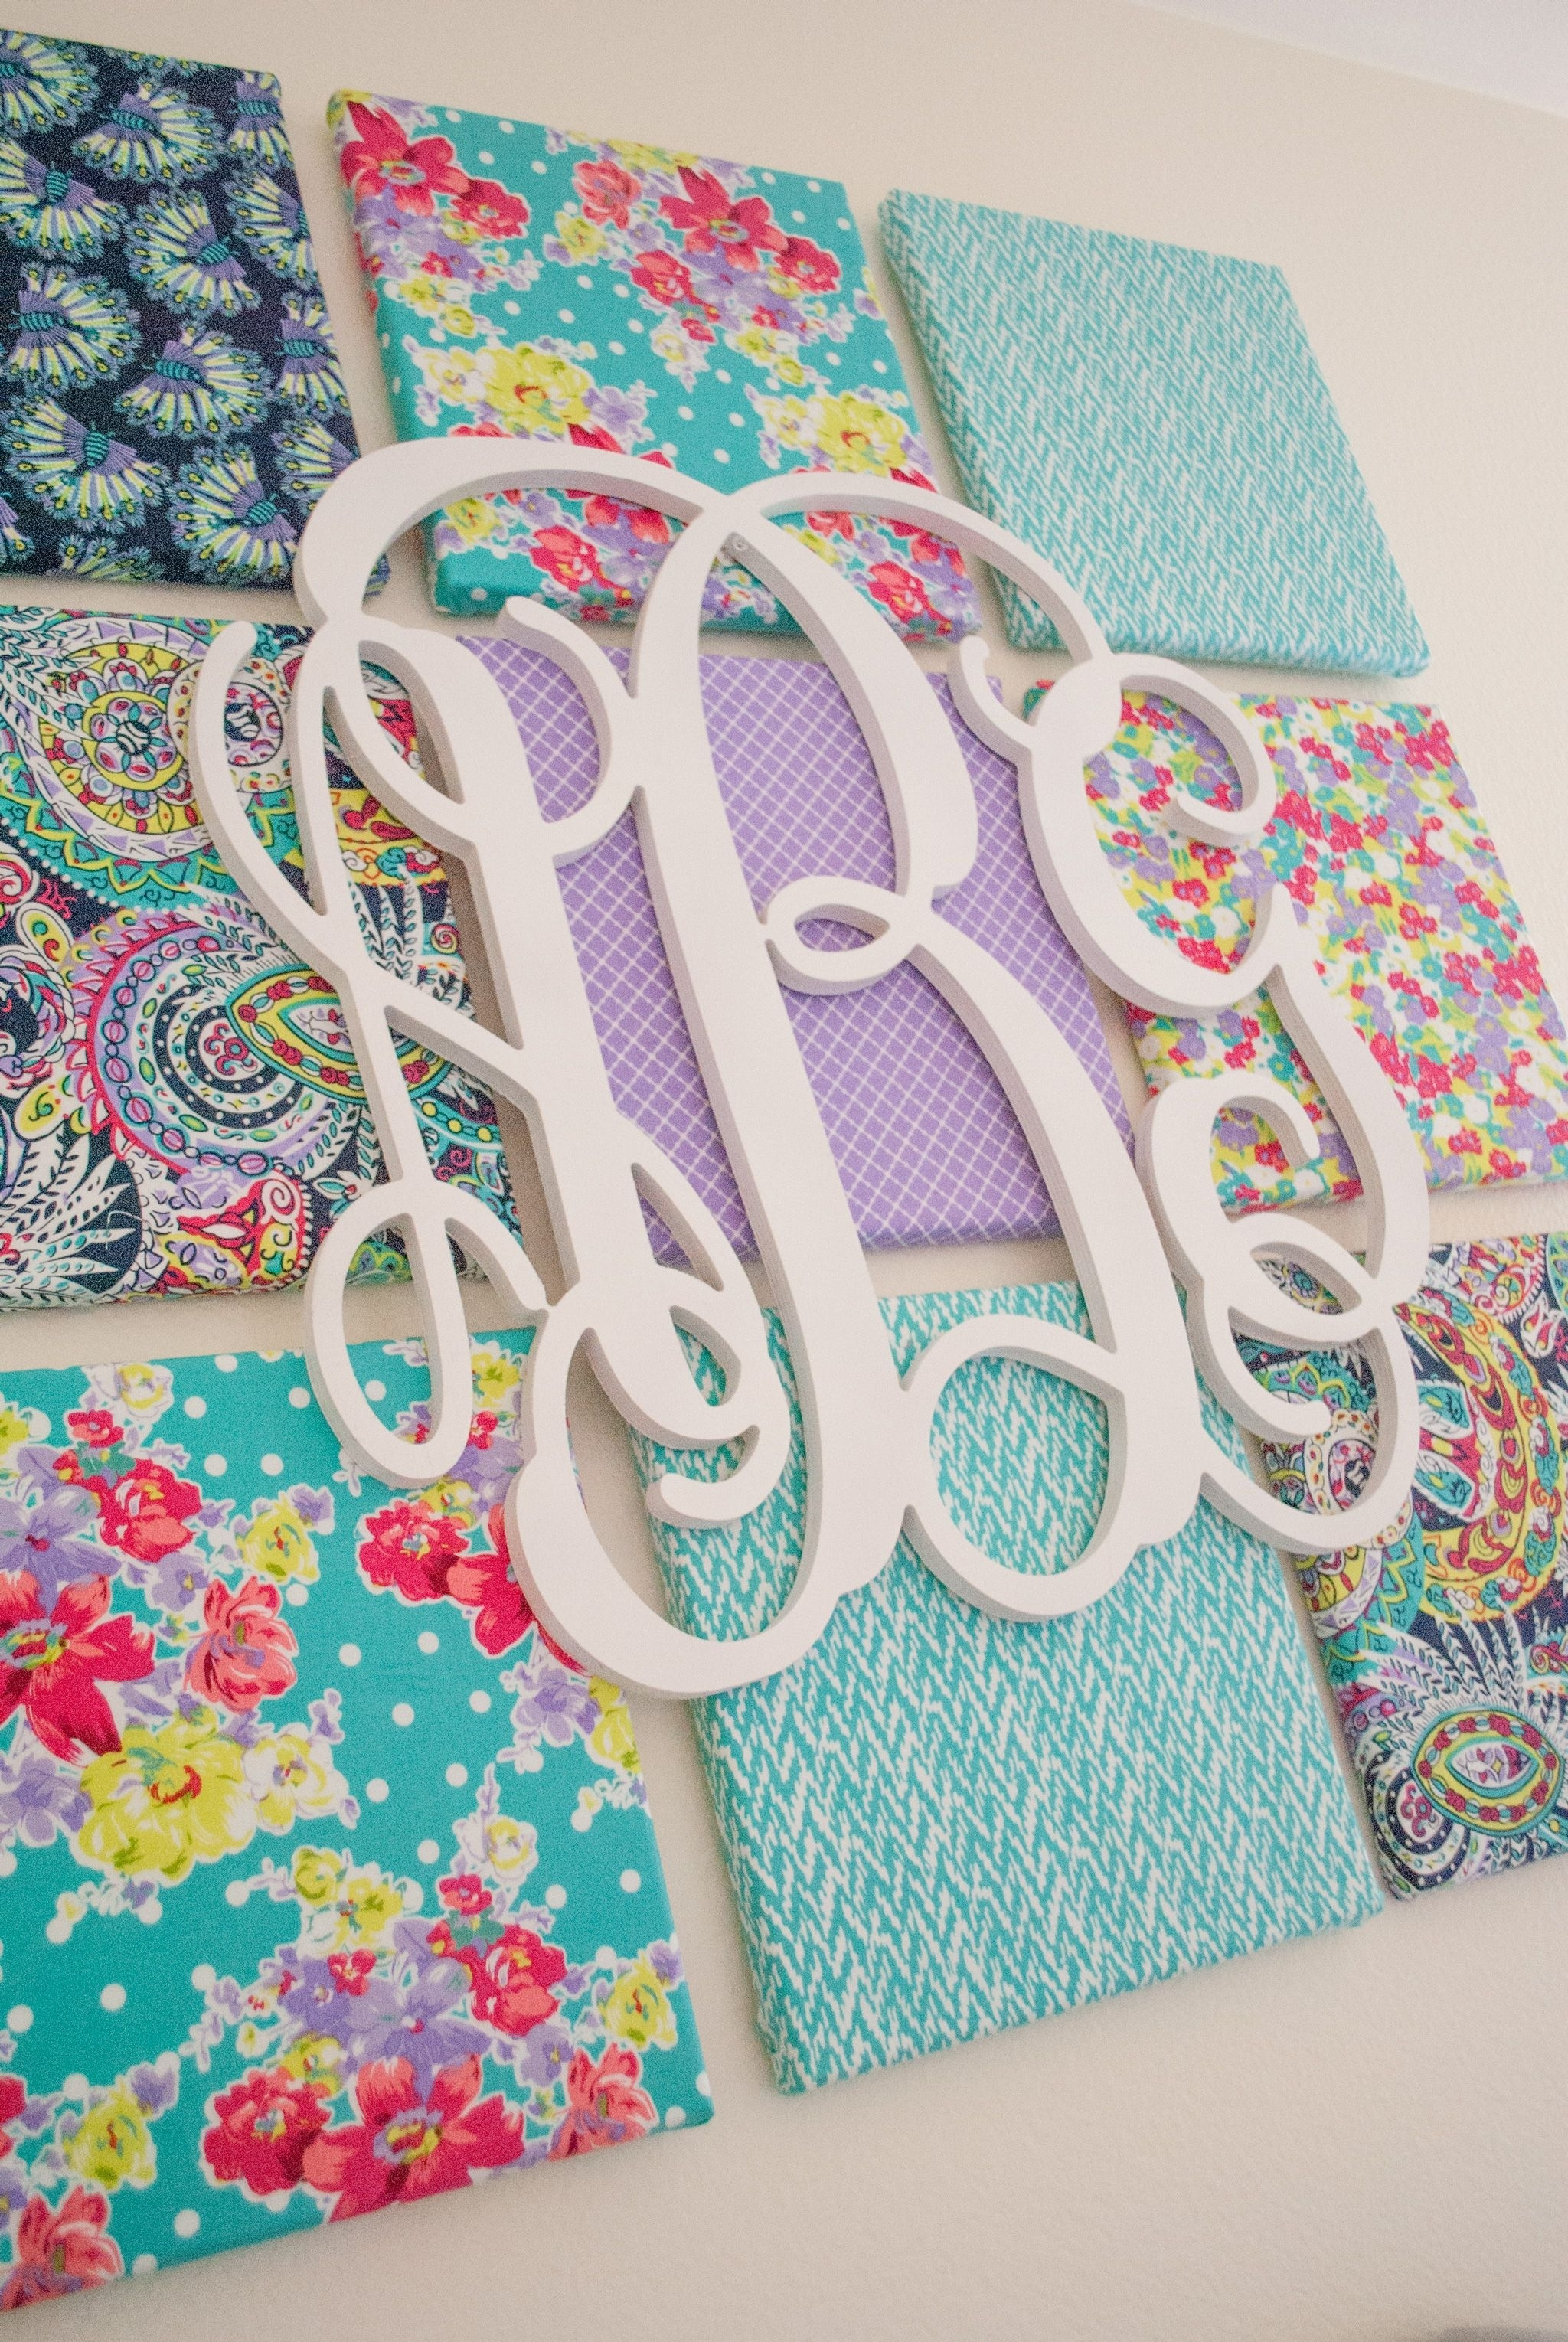 Diy Fabric Wall Art | Monogram Wall, Kids Rooms And Monograms With Regard To 2017 Fabric Wall Art Letters (View 8 of 15)